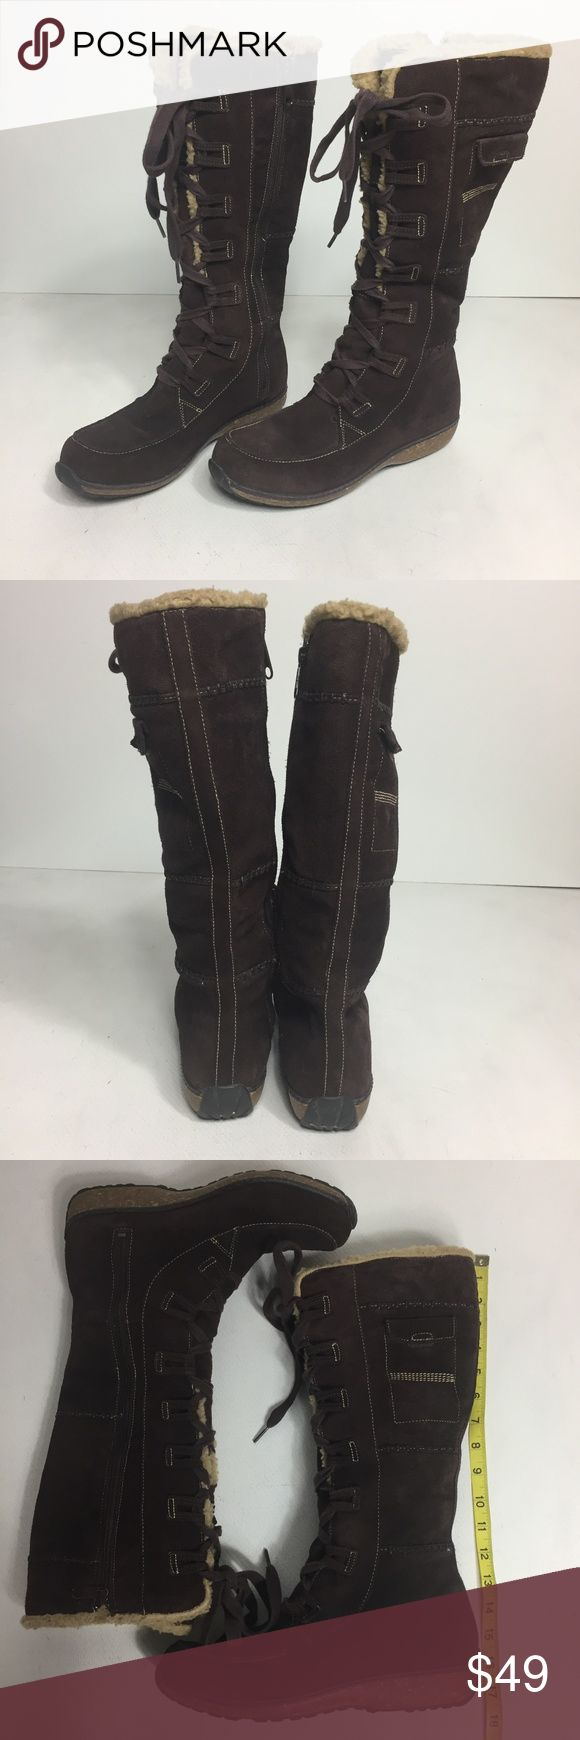 Timberland Earthkeepers Boots Tall Suede Knee High Timberland Earthkeepers Boots Womens 9.5 Tall Suede   Lace Up Knee High Fleece Lined Brown  in gently worn condition.  a7215kt10 Timberland Shoes Ankle Boots & Booties